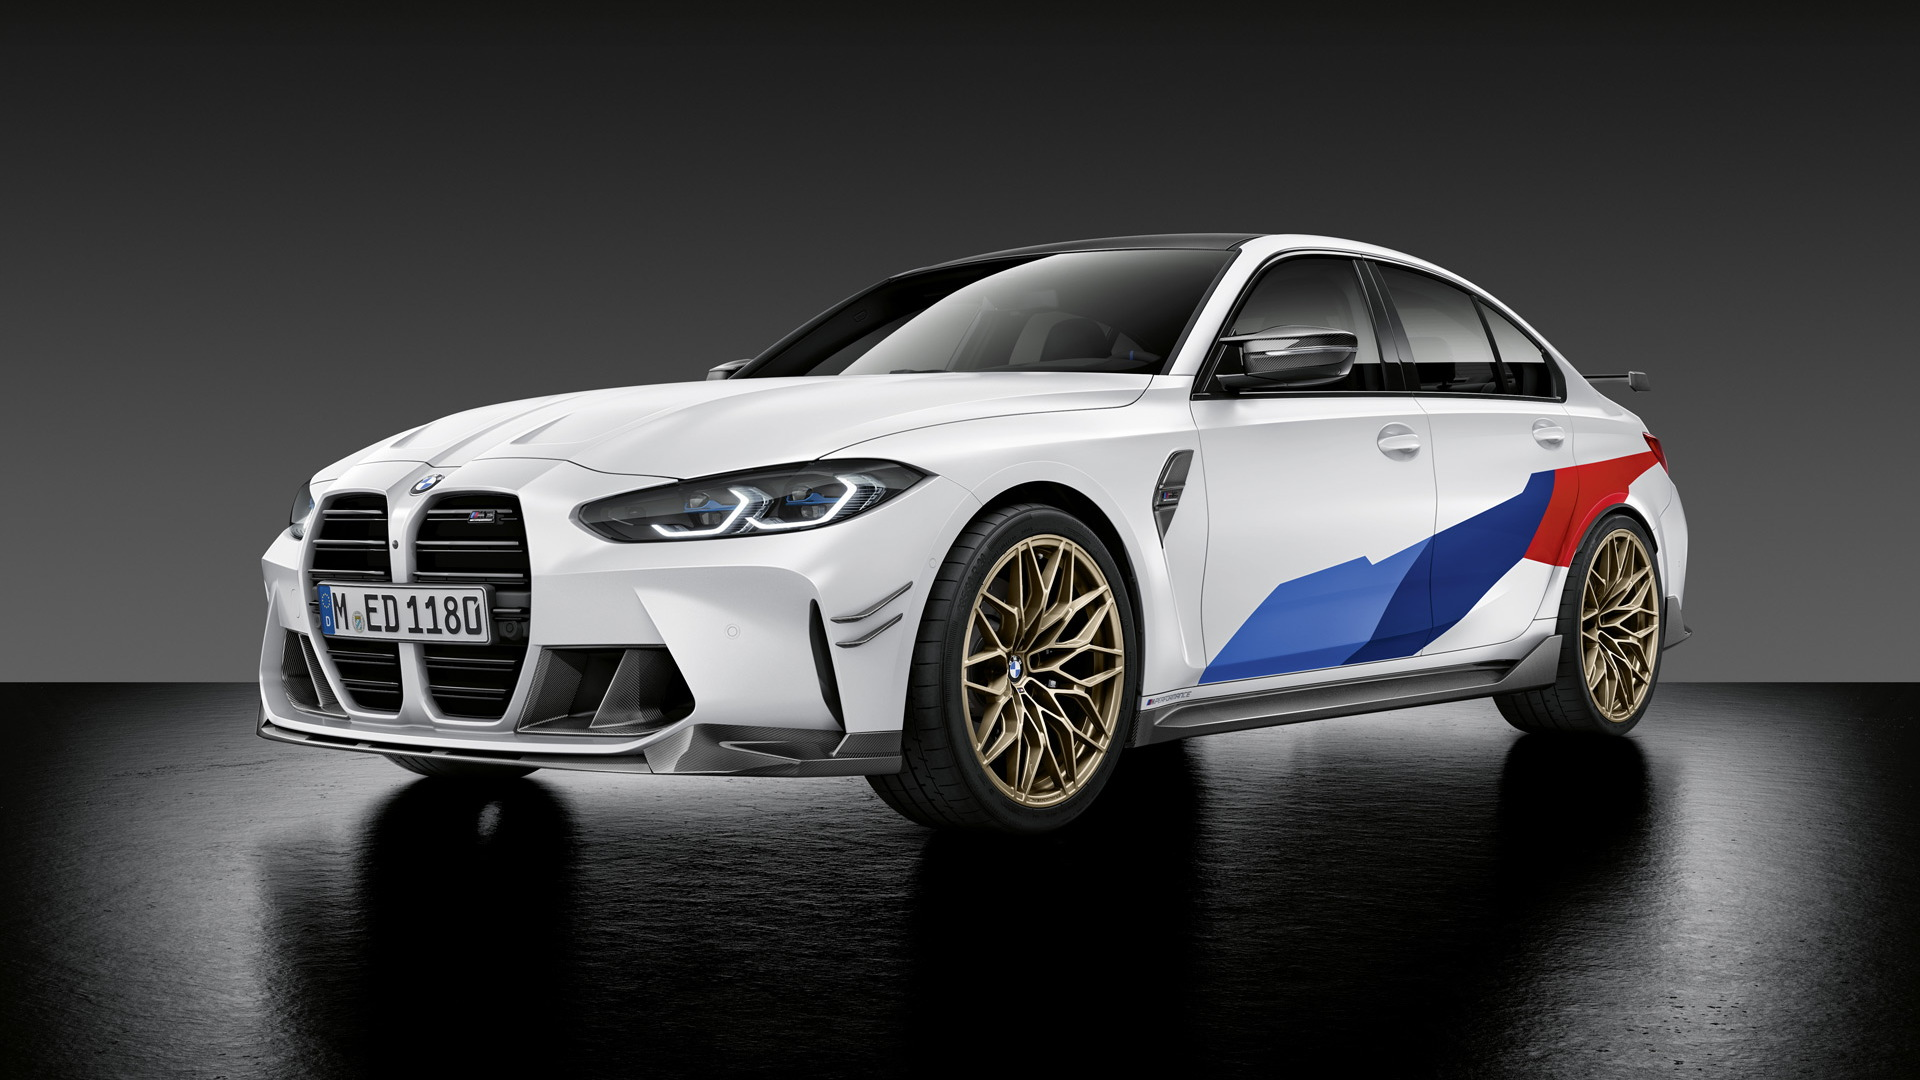 2021 BMW M3 equipped with M Performance parts